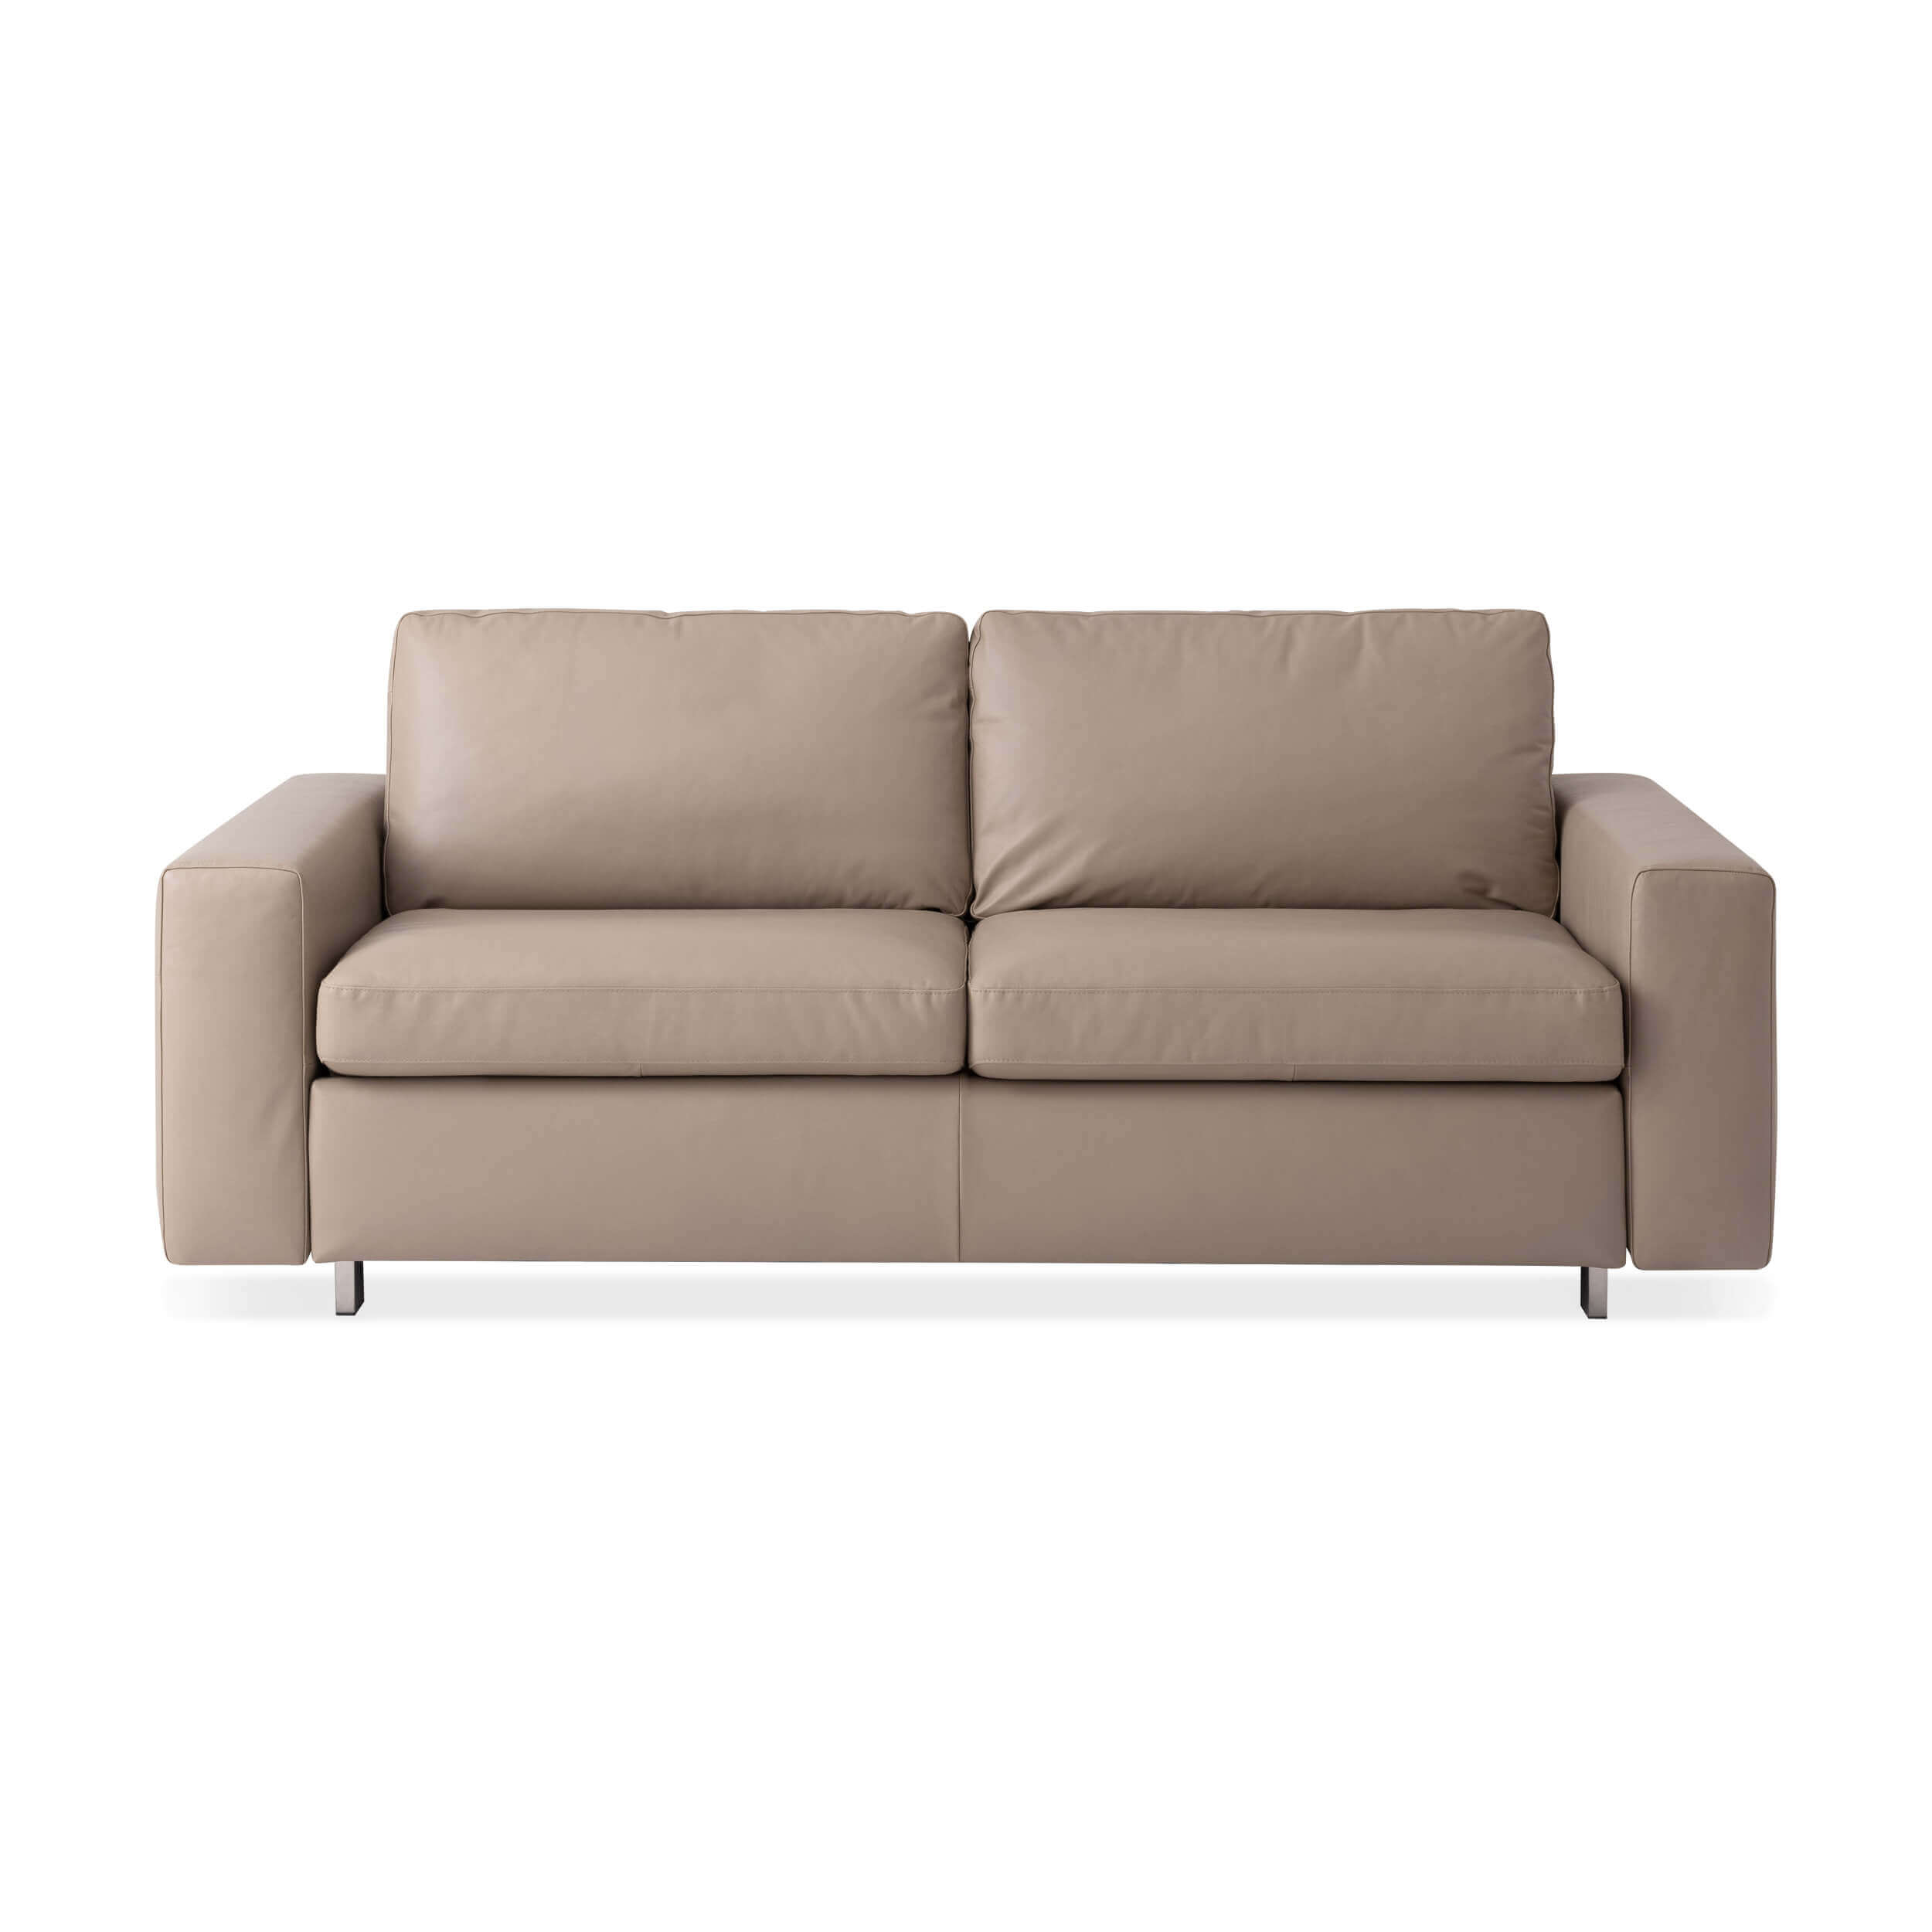 Sofa Bed For Sale Toronto Living Seating Sleeper Sofas Eq3